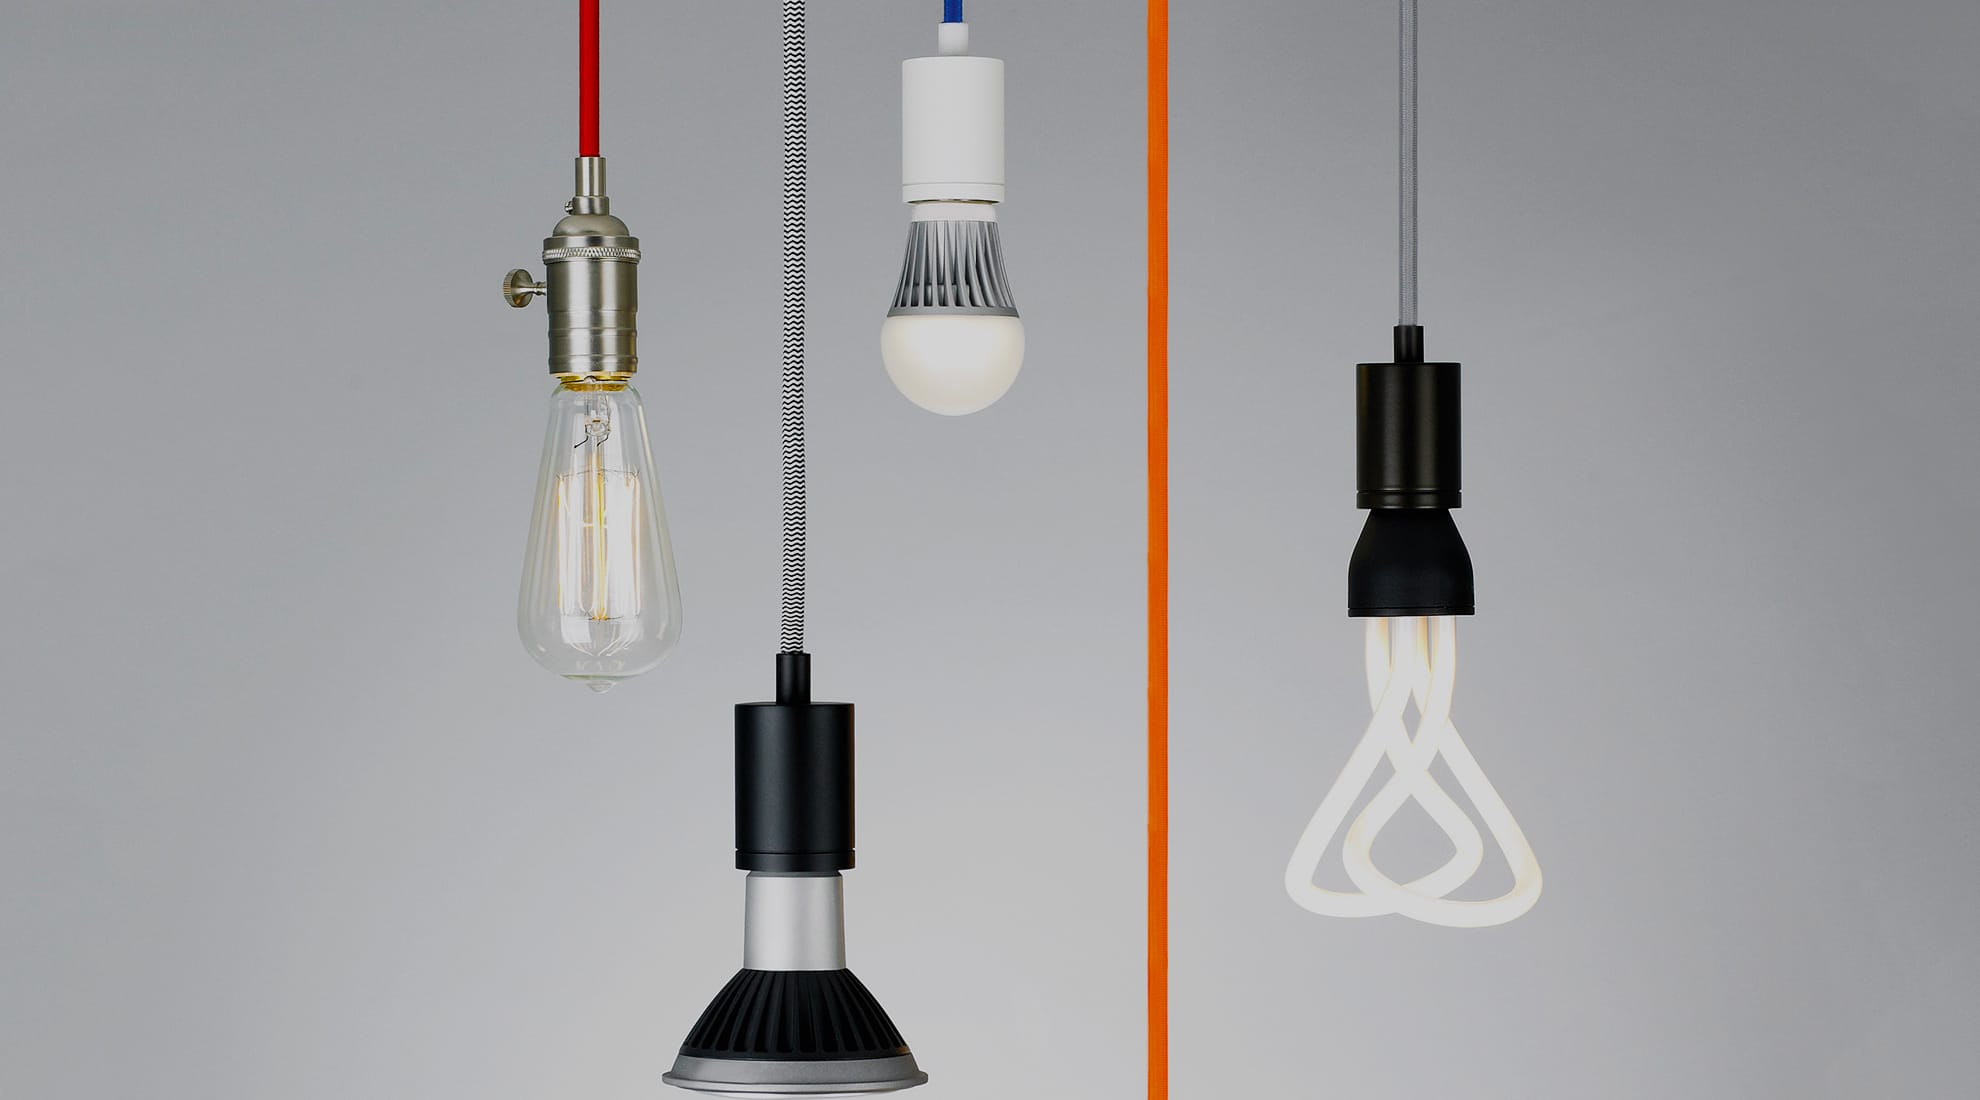 Differences in Light Bulbs